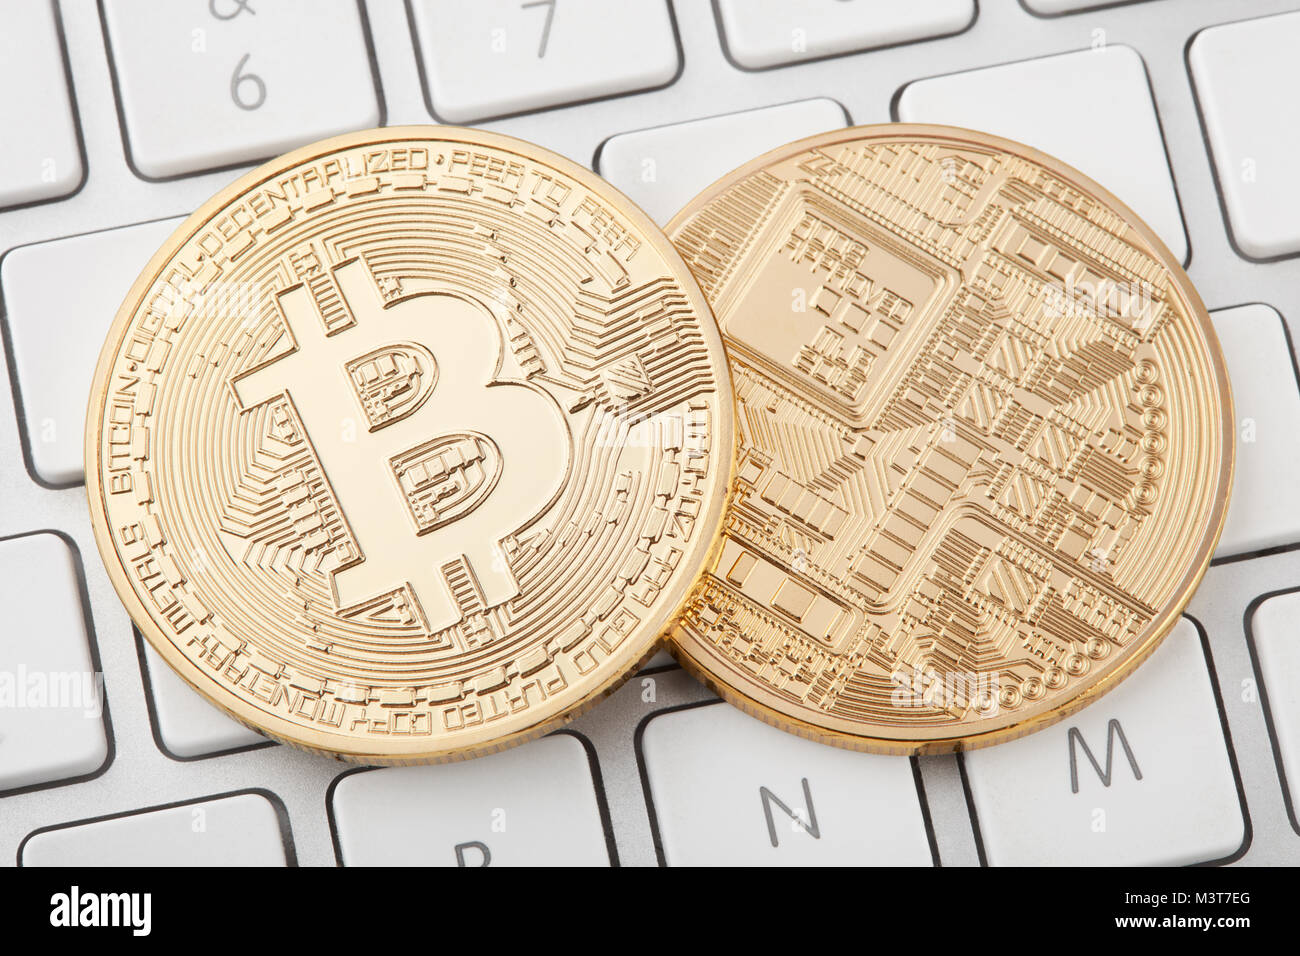 Two golden bitcoin front and back on computer keyboard stock photo two golden bitcoin front and back on computer keyboard ccuart Images